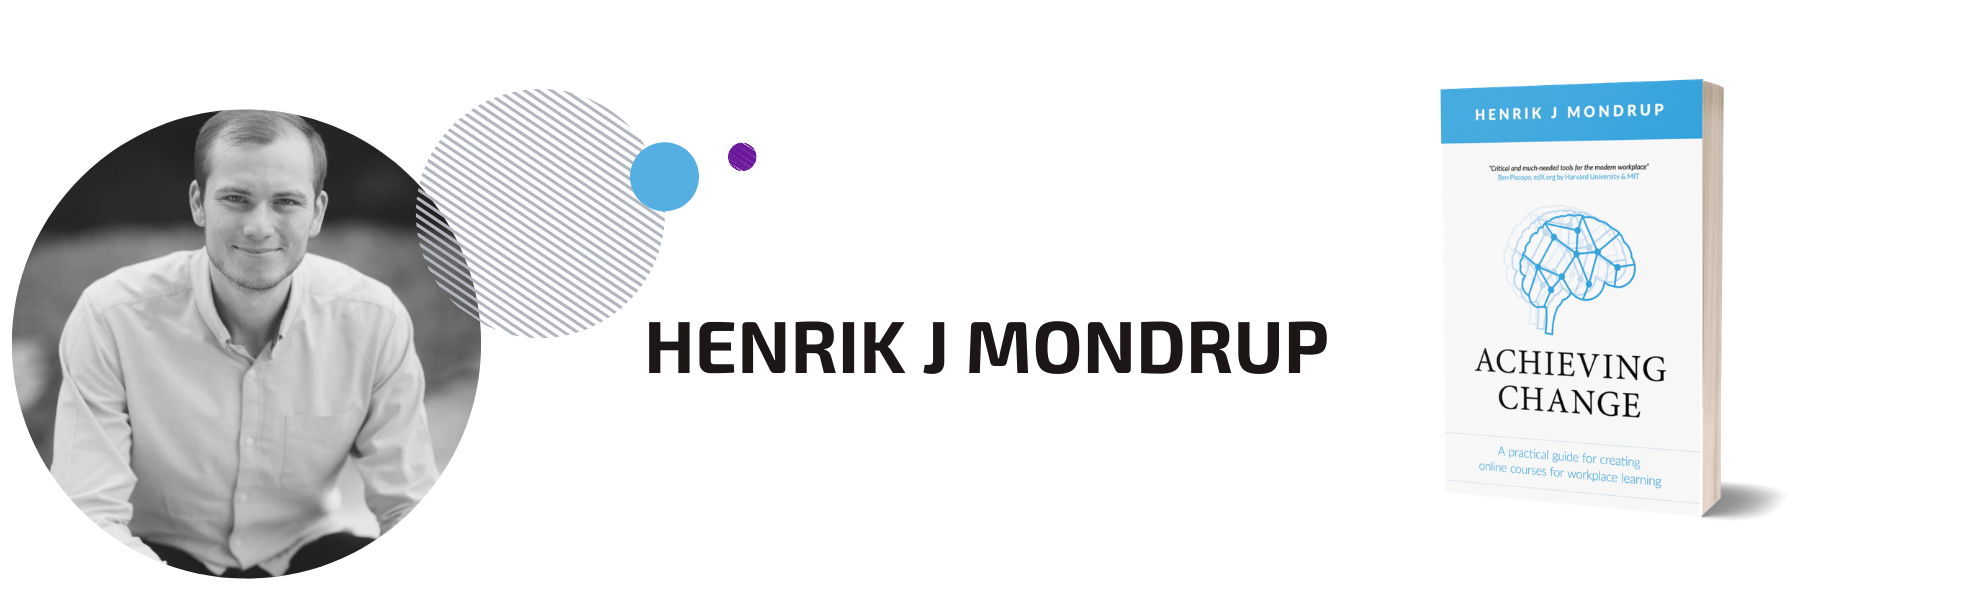 Henrik Mondrup Author Page Header